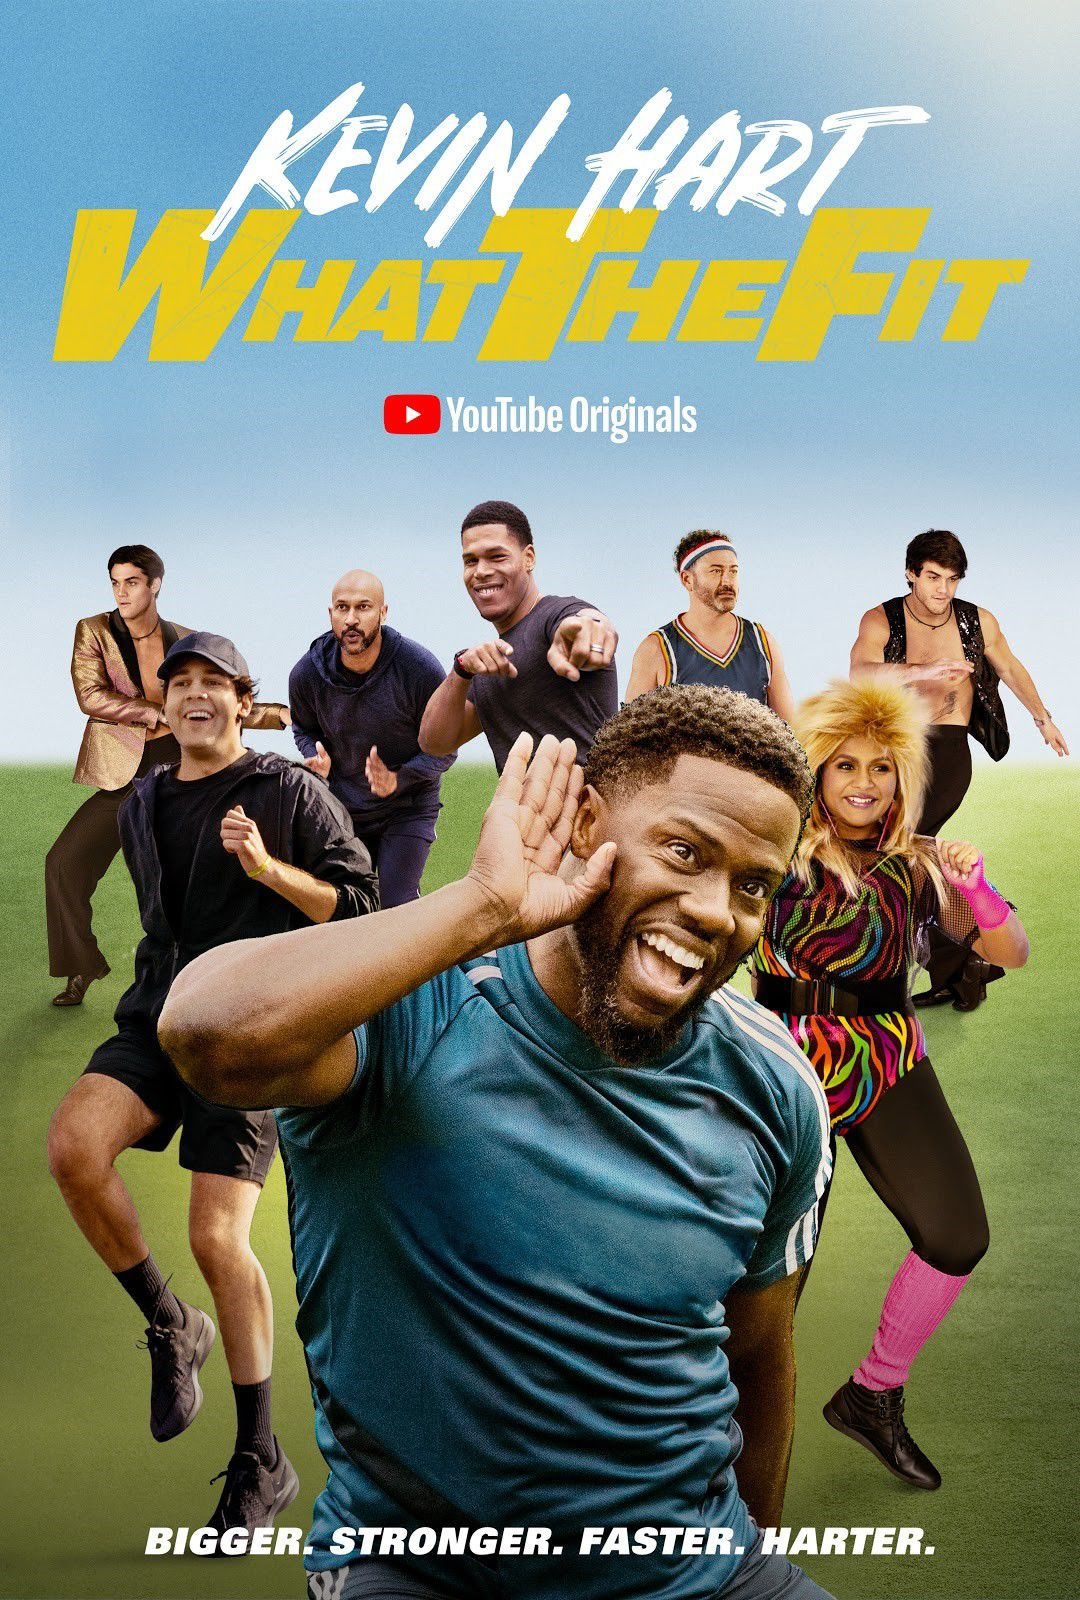 Kevin Hart S Hilarious What The Fit On Youtube Details His Recovery Entertainment Phillytrib Com #wallofamerica subscribe to get the latest #kimmel: kevin hart s hilarious what the fit